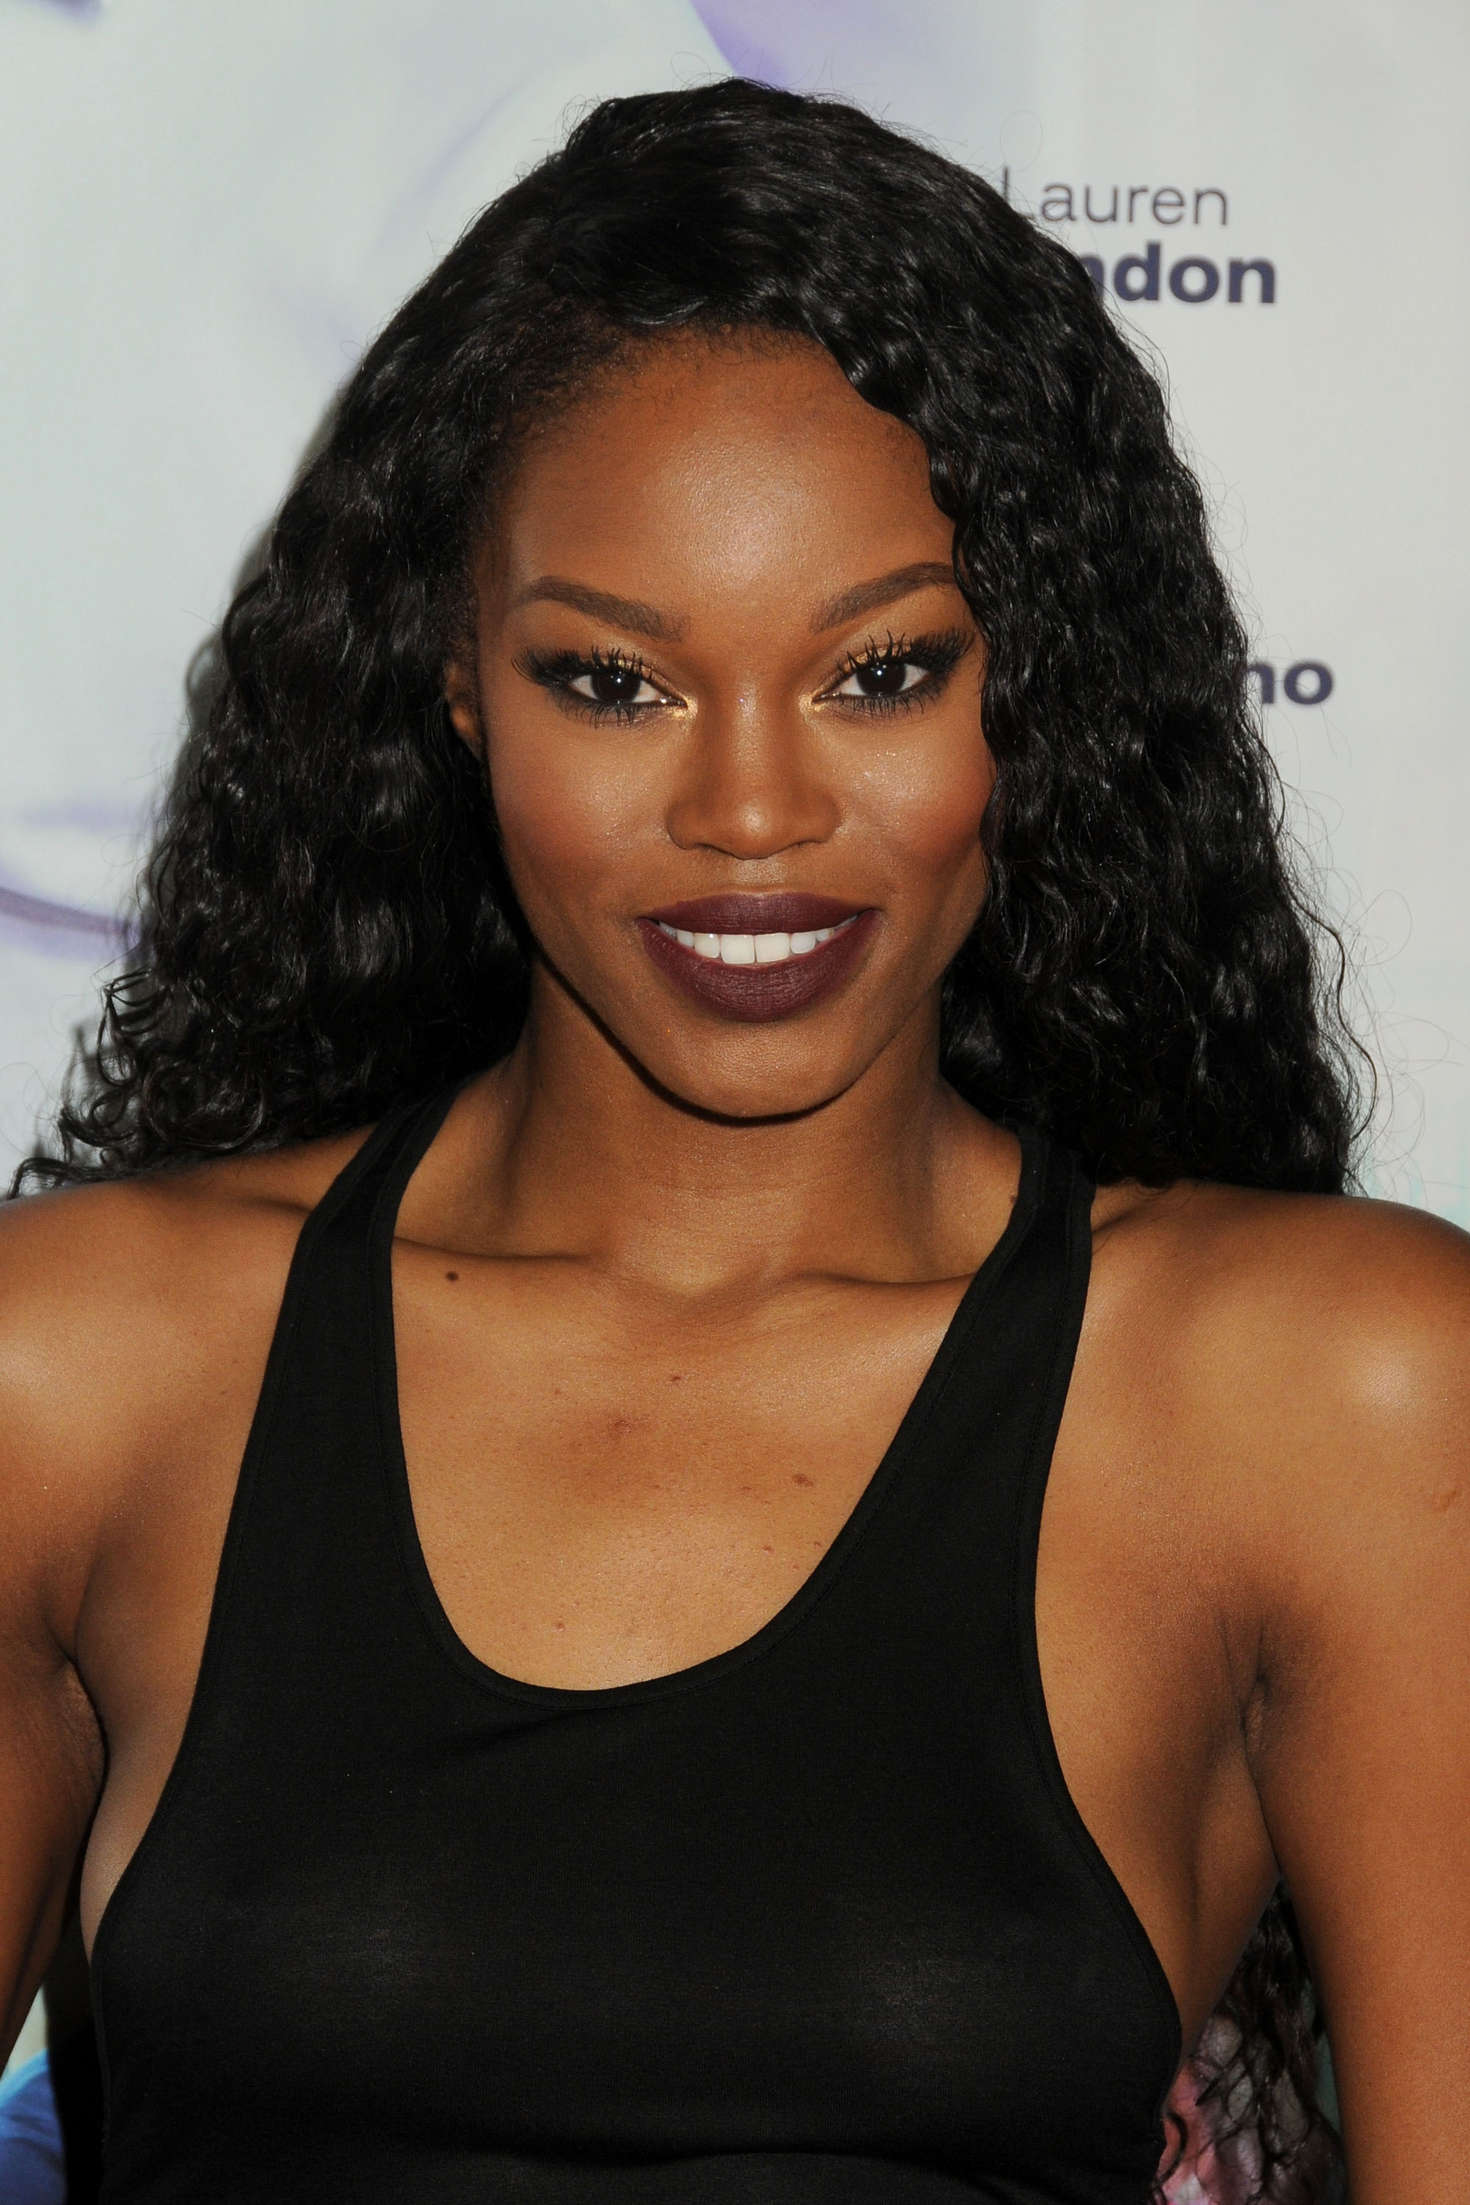 Discussion on this topic: Julianne Phillips, eugena-washington/